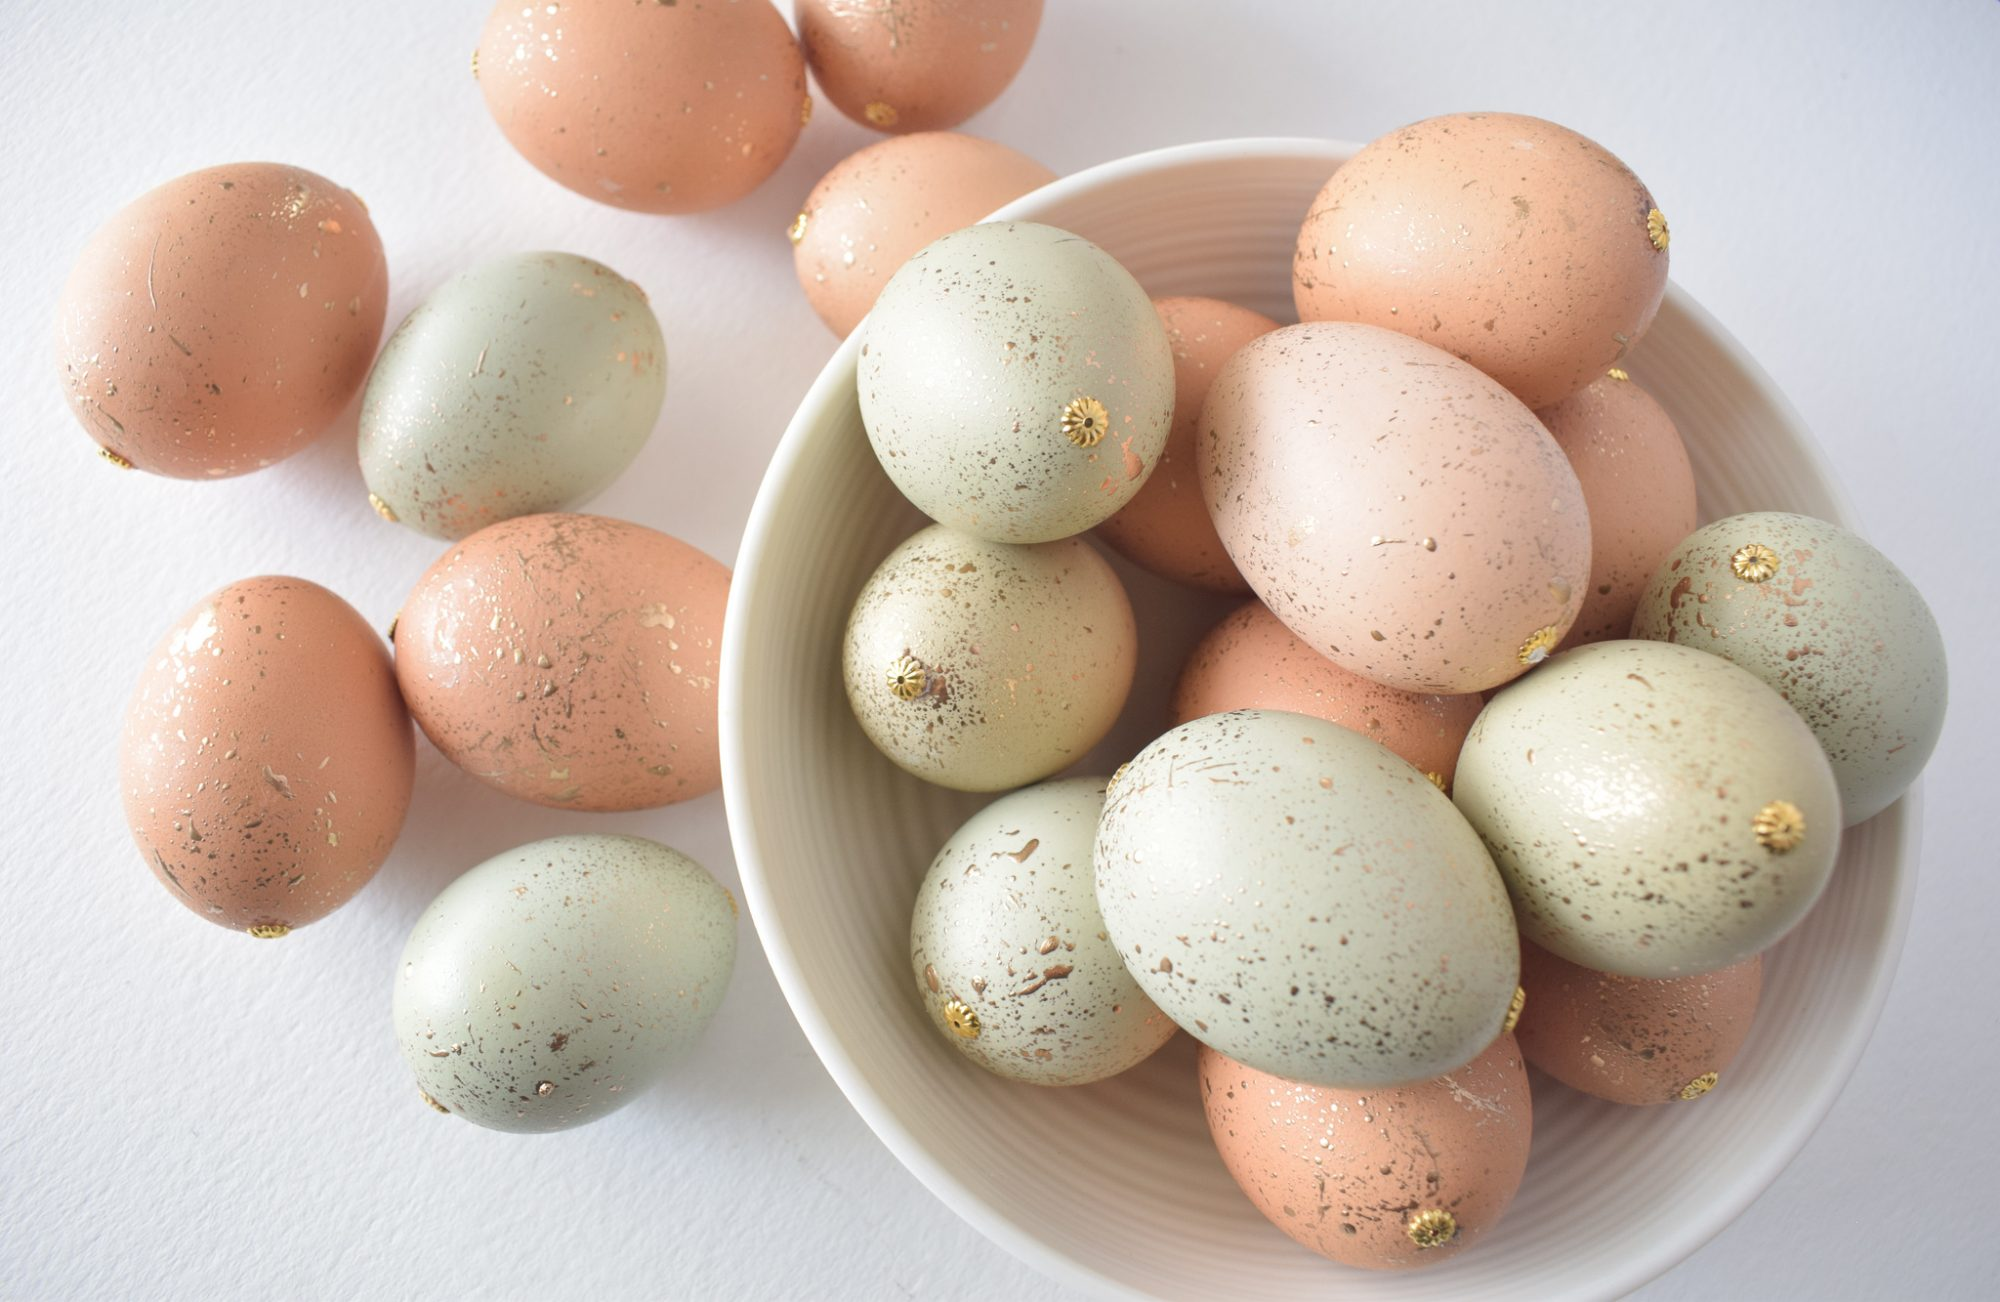 DIY Gold Speckled Easter Eggs